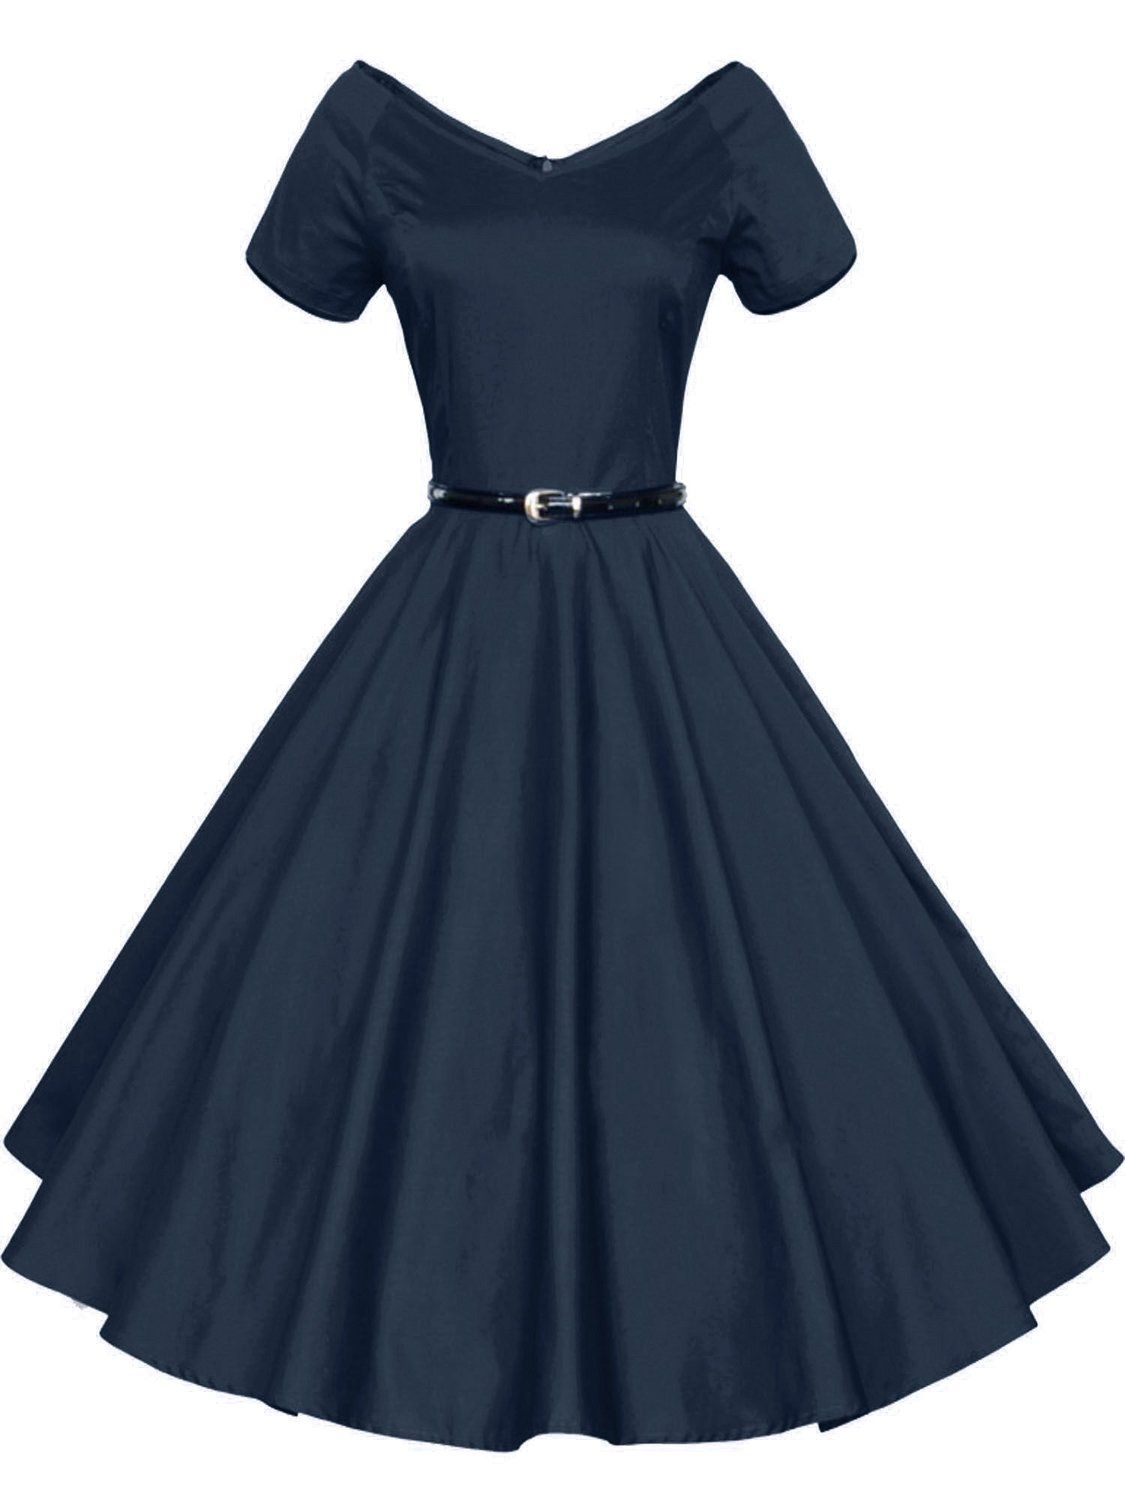 Luouse s s s vintage vneck swing rockabilly pinup ball gown